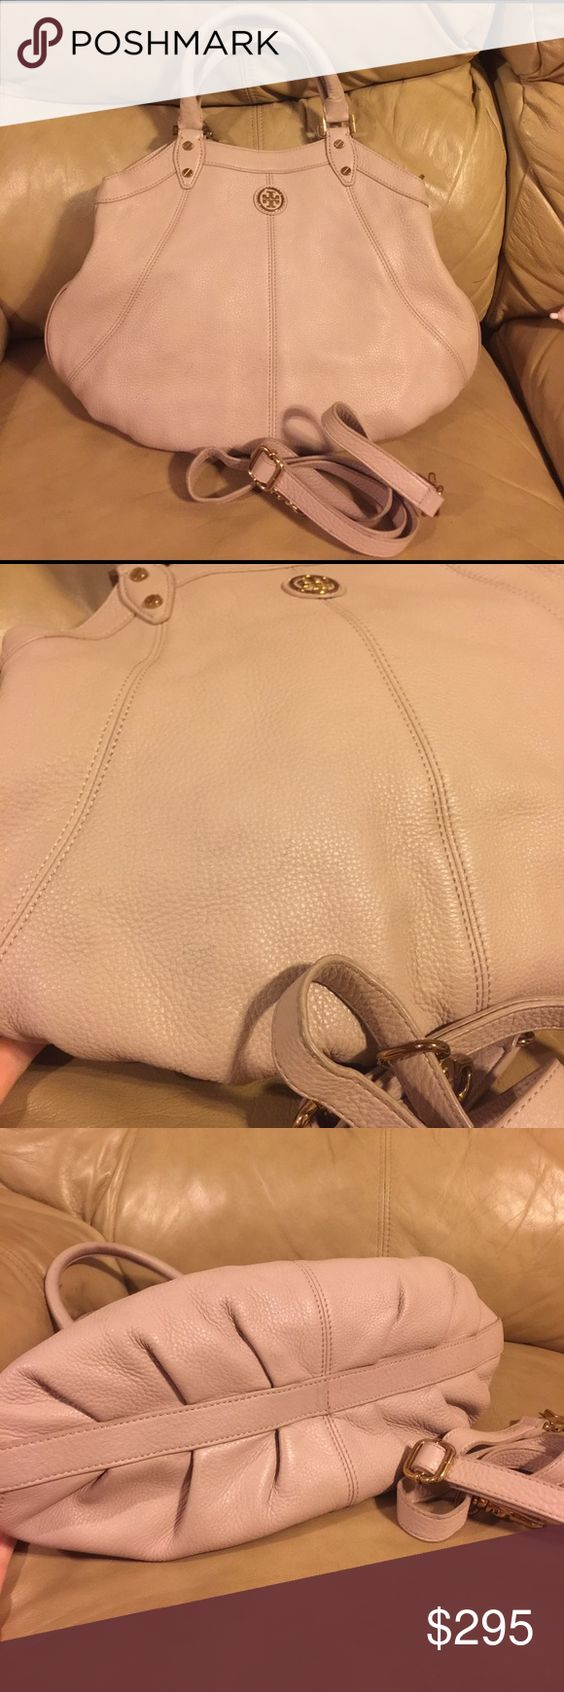 Tory Burch Robinson Very cute good condition, minor wear, comes with strap. Beautiful color! Wear in handles. Priced to sell, TV higher. Tory Burch Bags Hobos